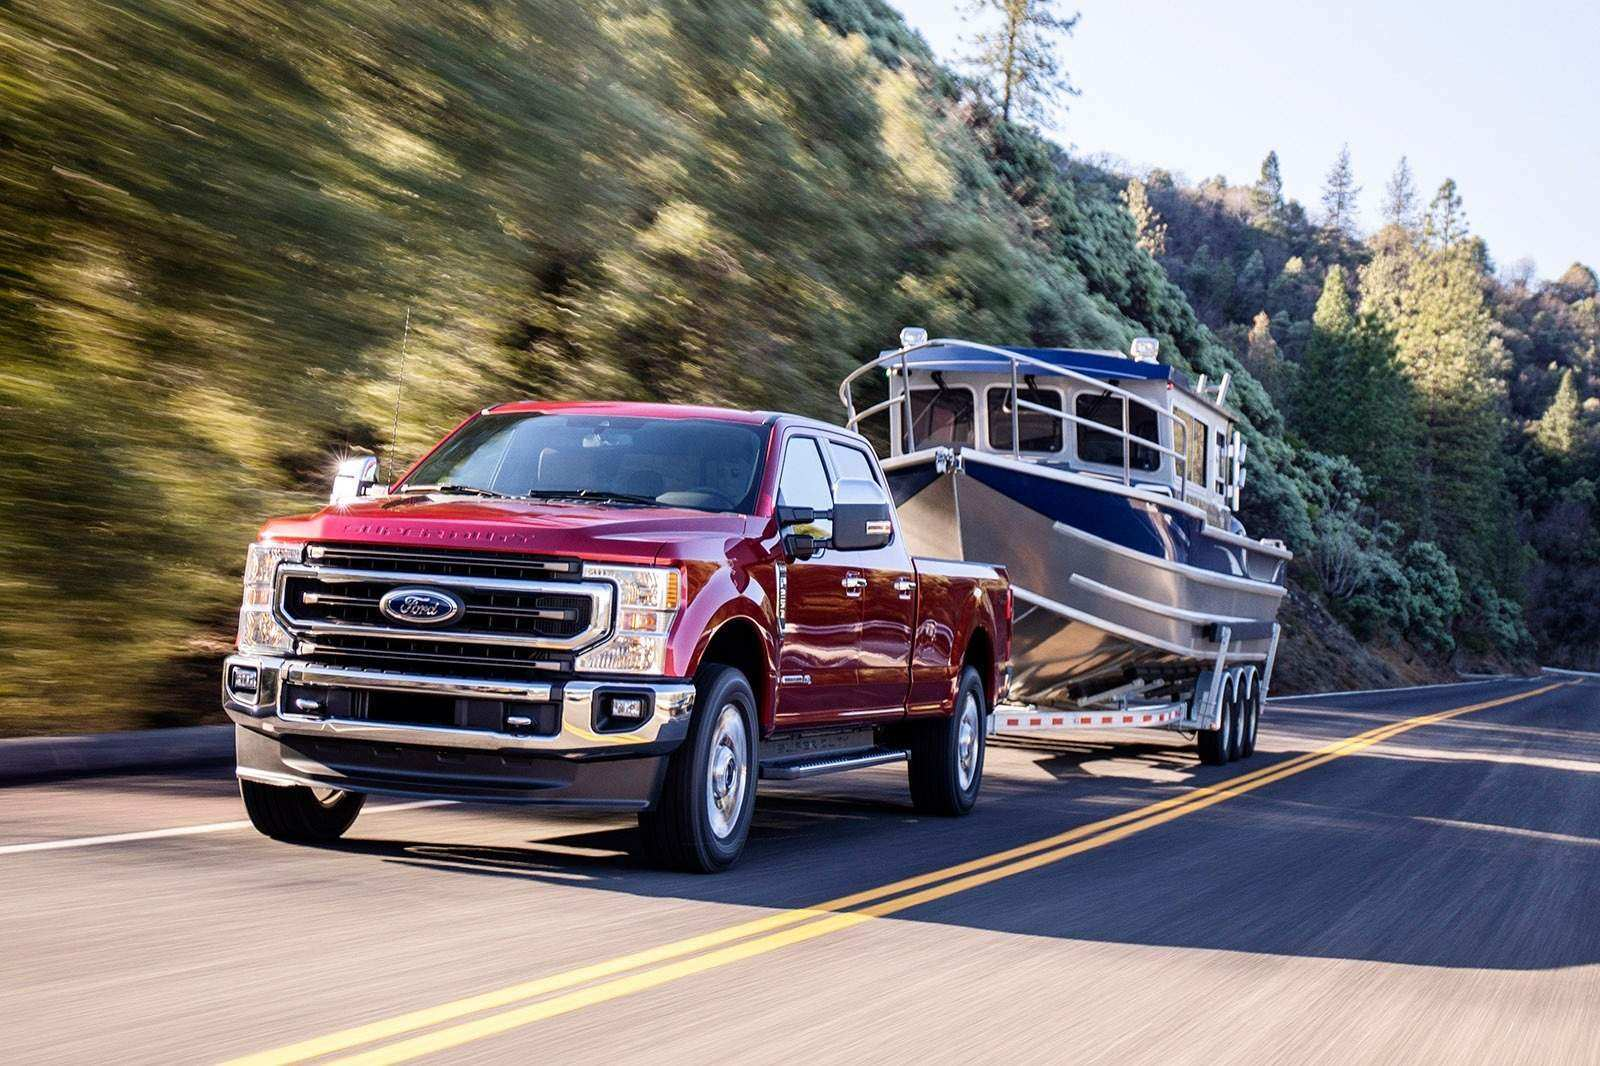 95 The Best 2020 Ford F250 Diesel Rumored Announced Price And Release Date